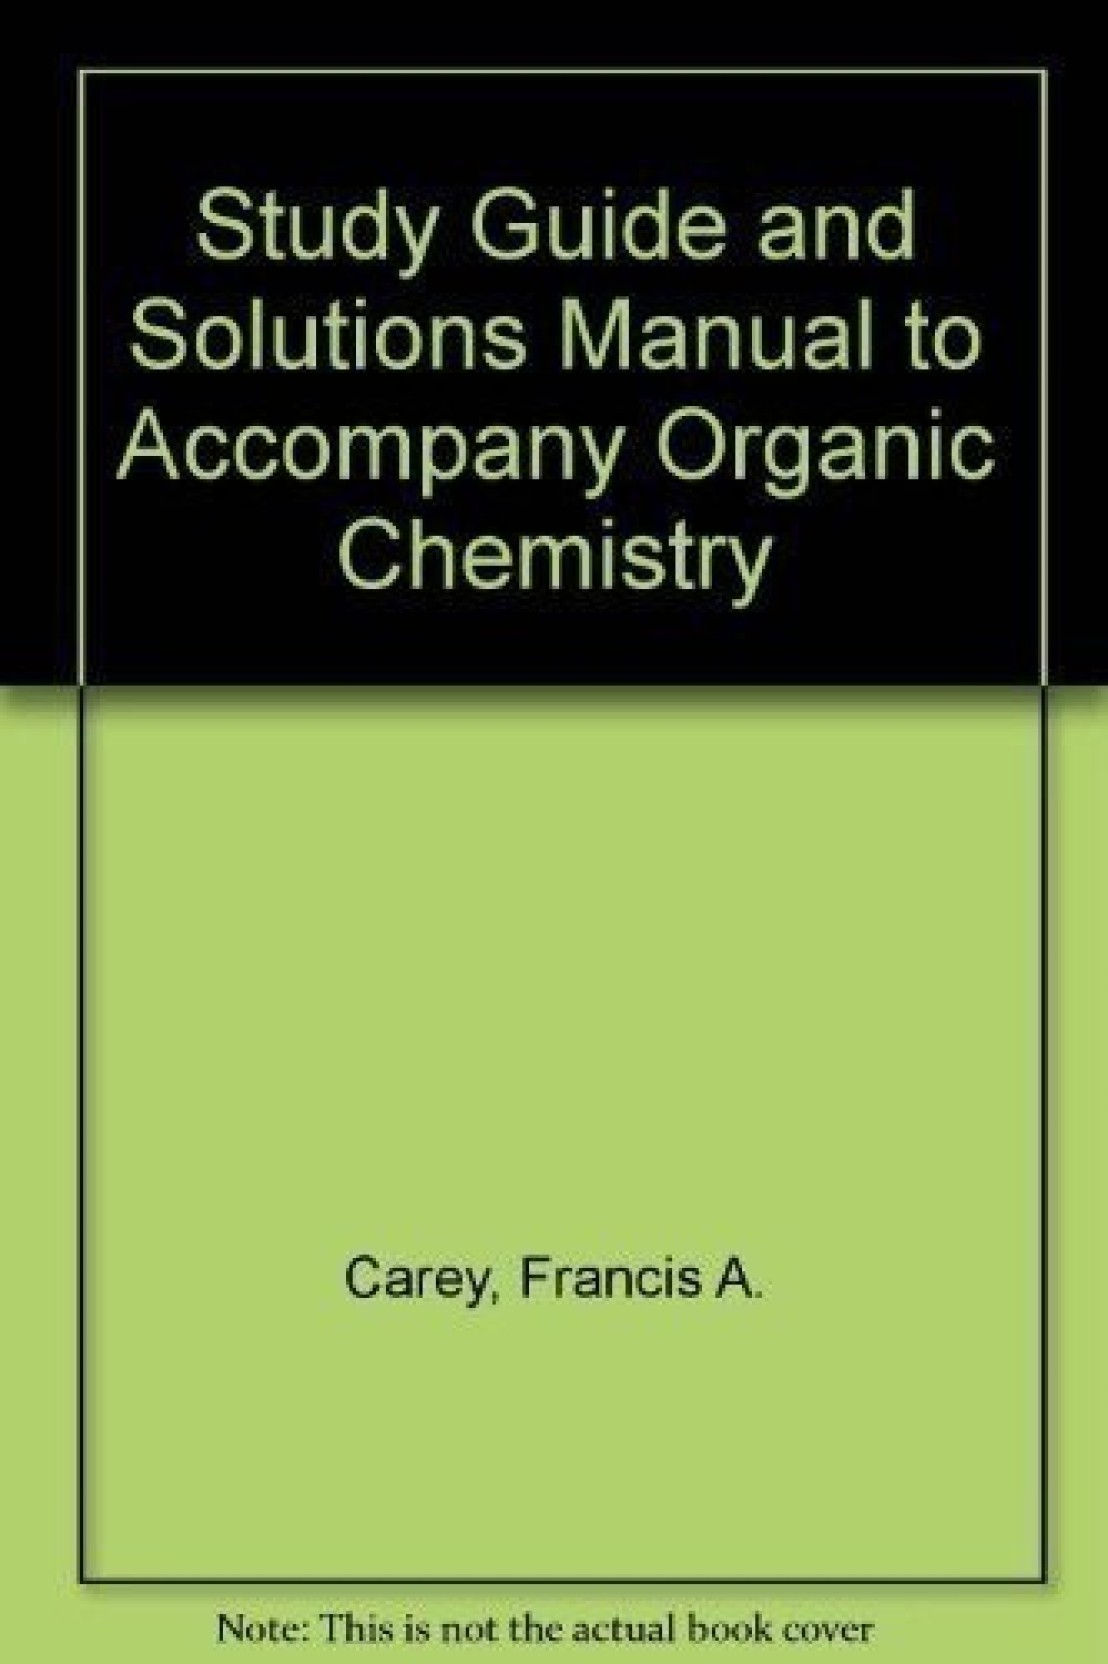 ... Solutions Manual to Accompany Organic Chemistry. Share